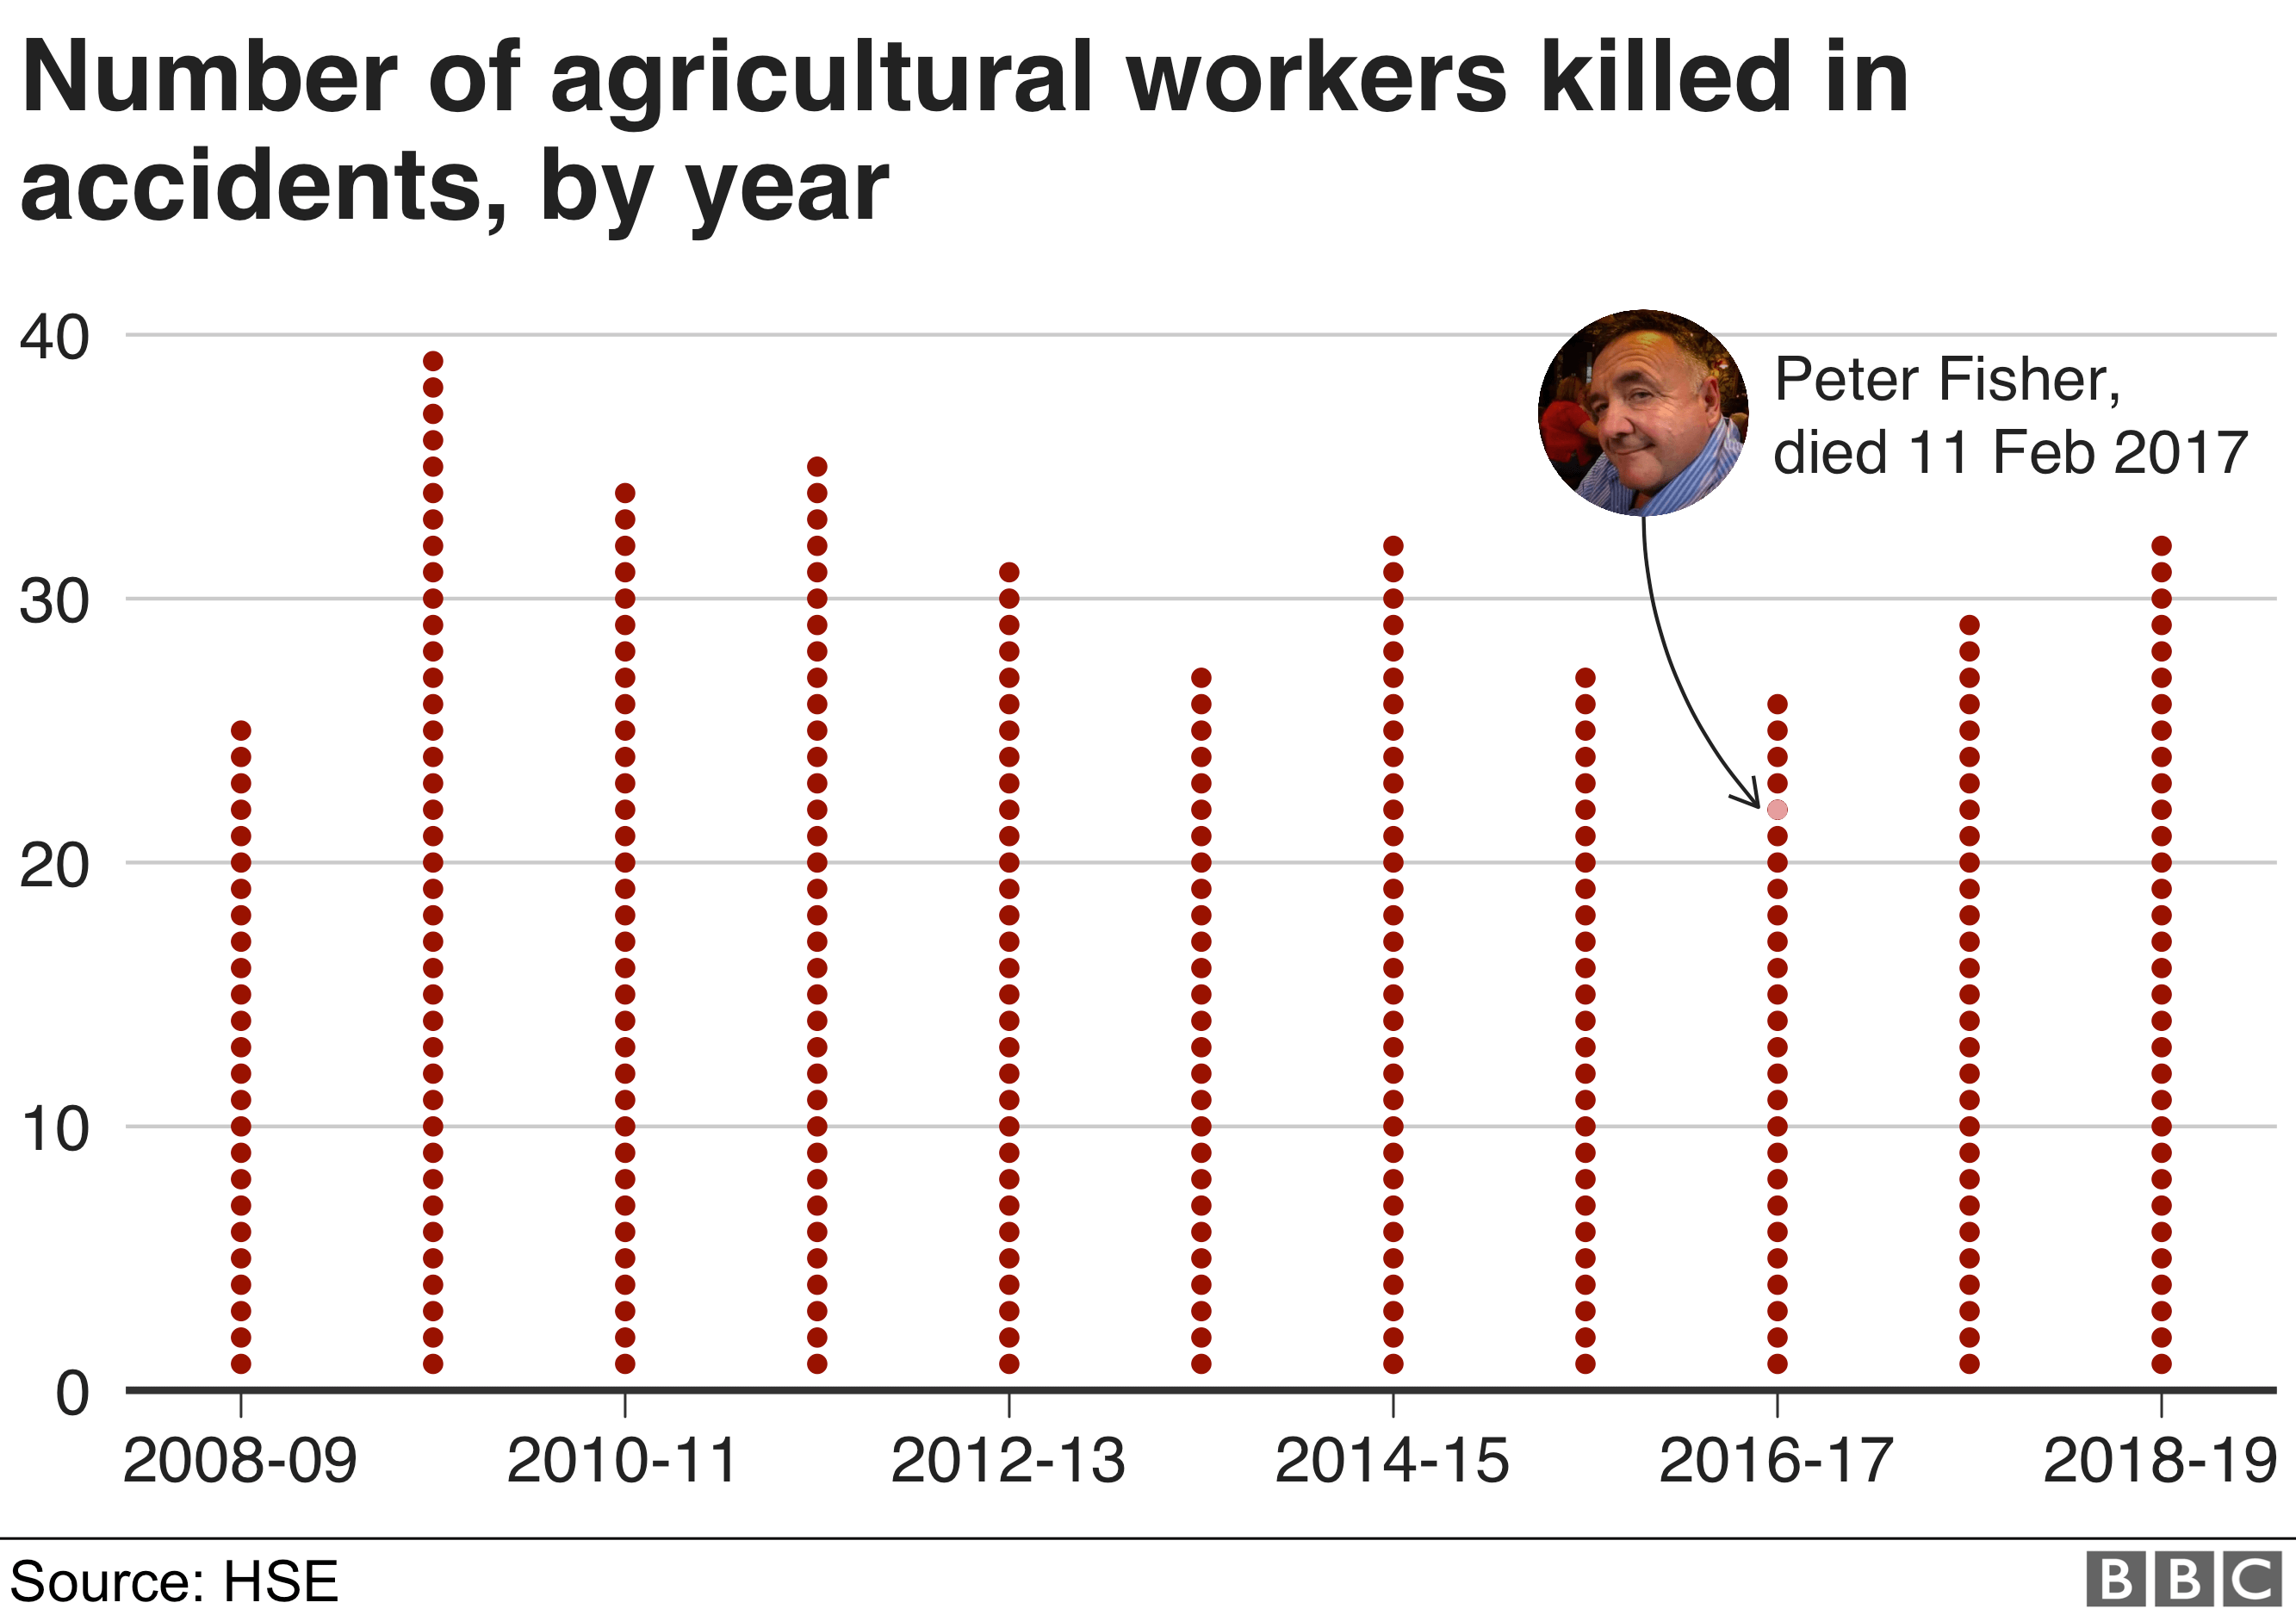 Chart showing number of agricultural workers killed in accidents each year